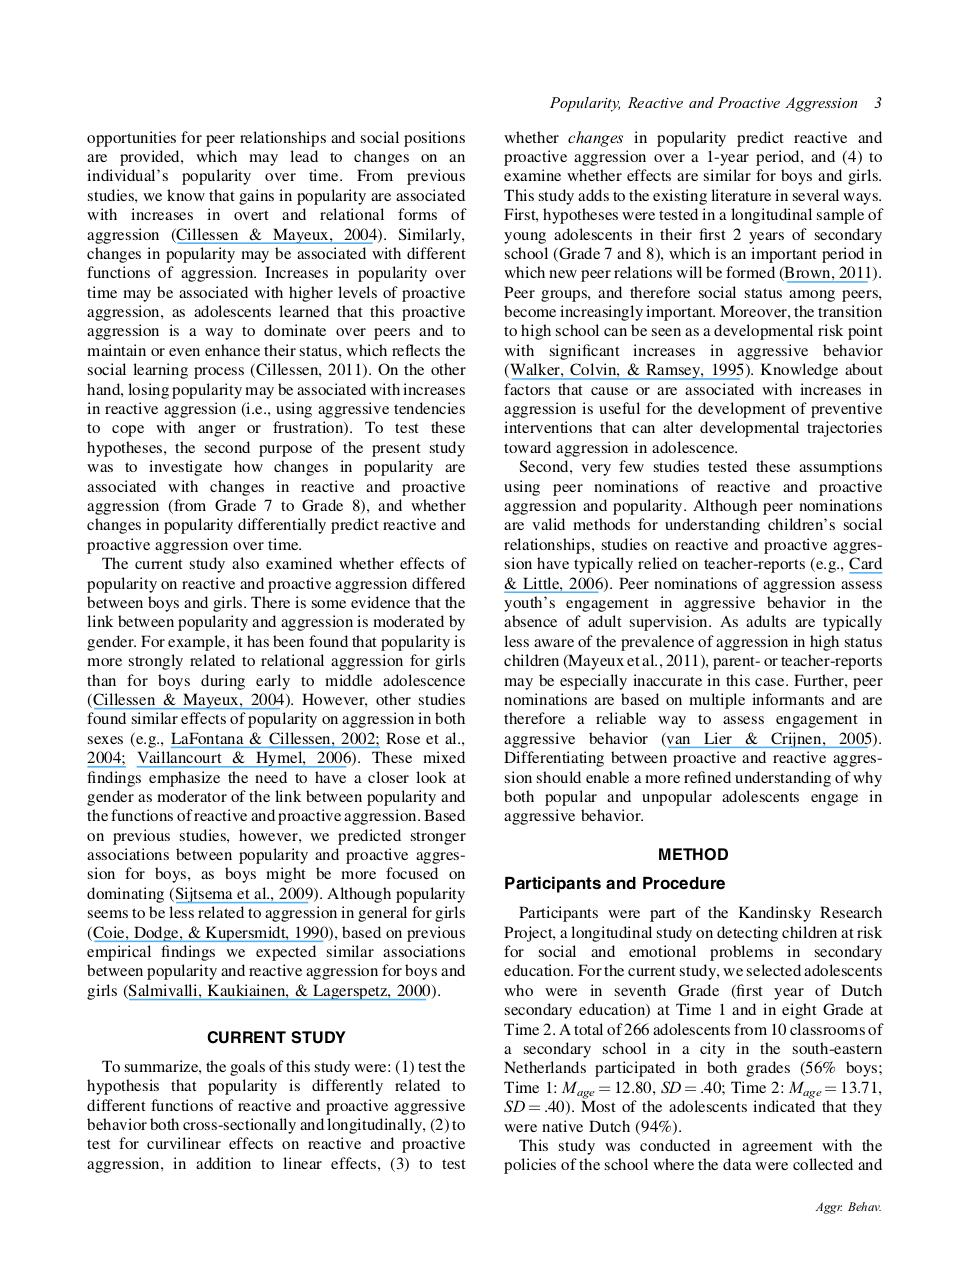 reactive and proactive aggression.pdf - page 4/13